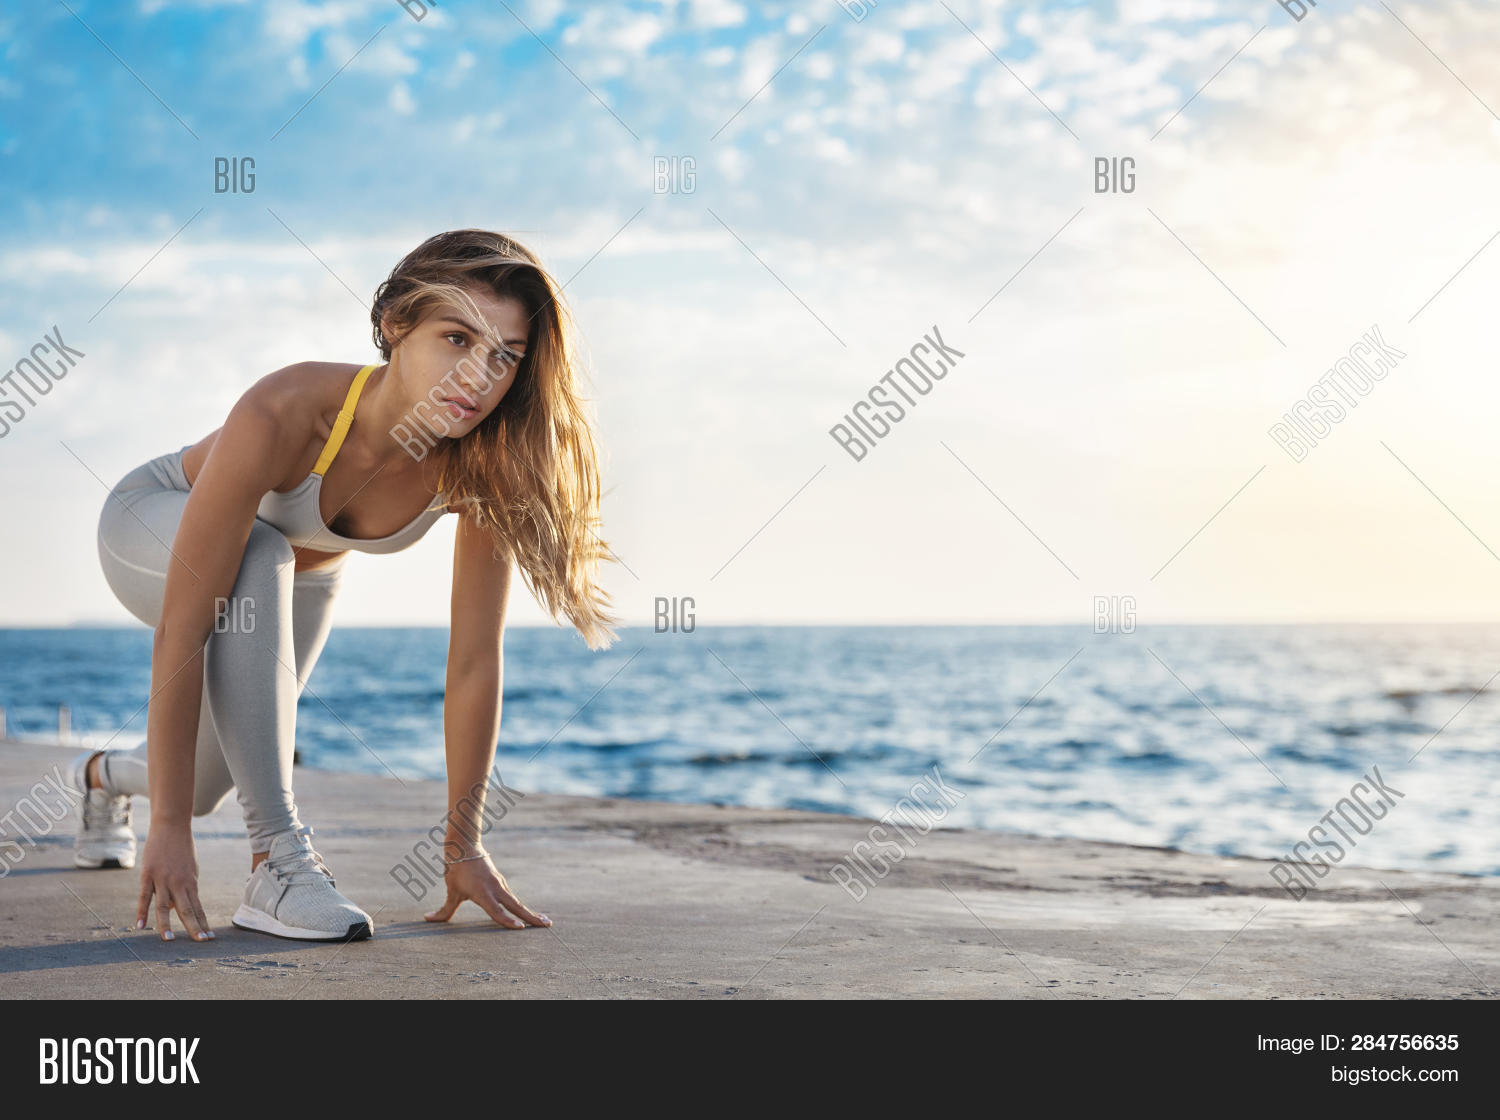 Motivated attractive fit sporty caucasian sportswoman low start pose looking forward jogging, running training session during sunrise quay. Woman leading sport lifestyle touching pier hands ready run